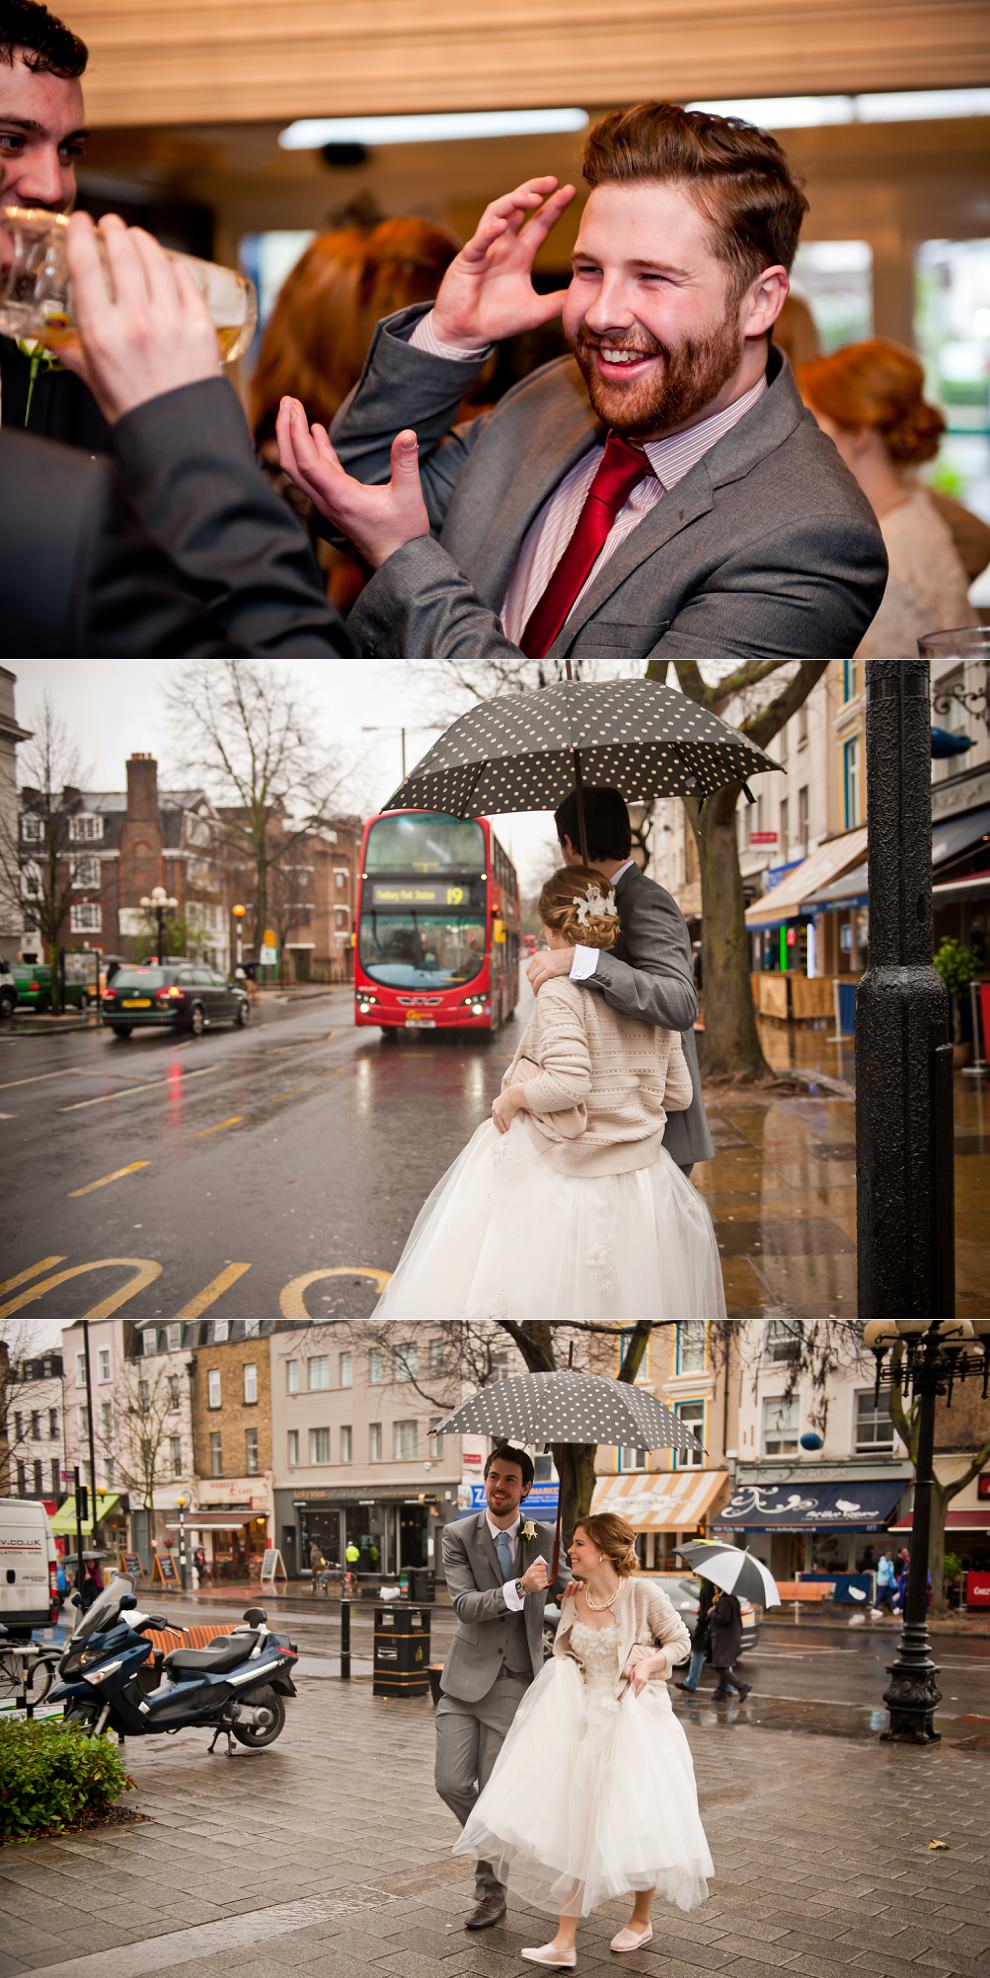 Rainy wedding London bus